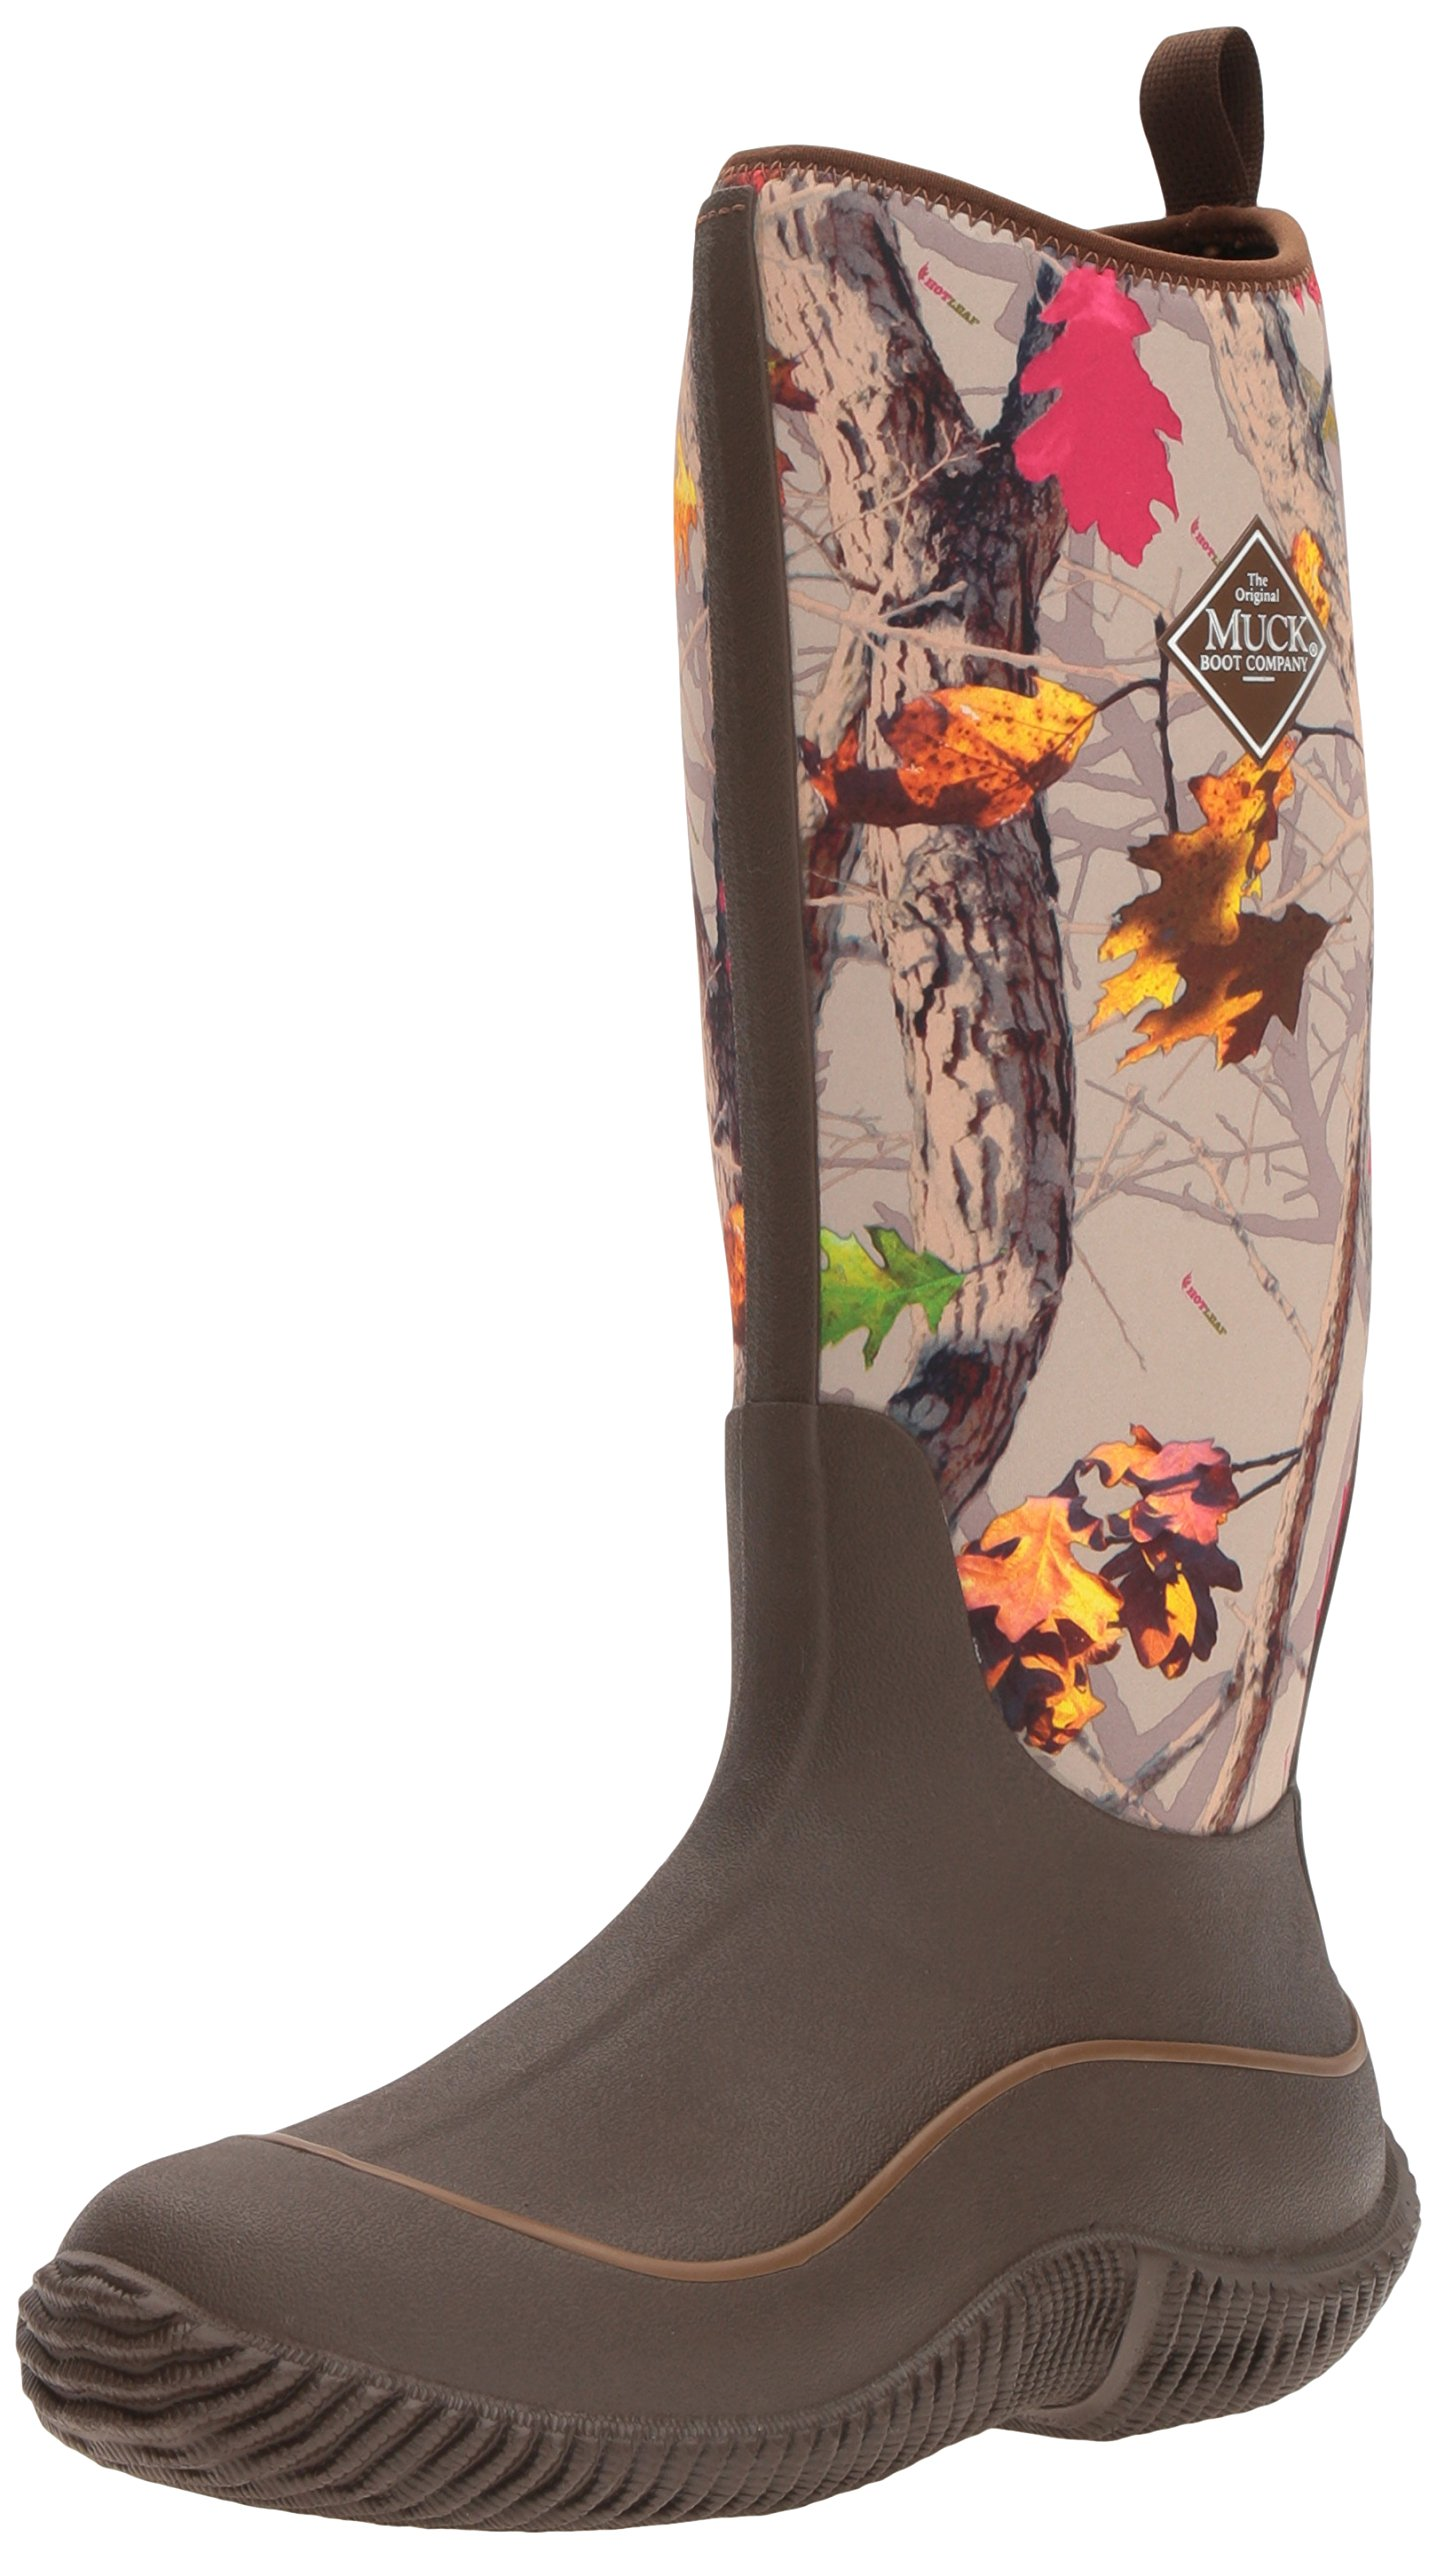 Muck Boot Women's Hale Snow Boot, Brown/Hot Leaf Camo, 8 M US